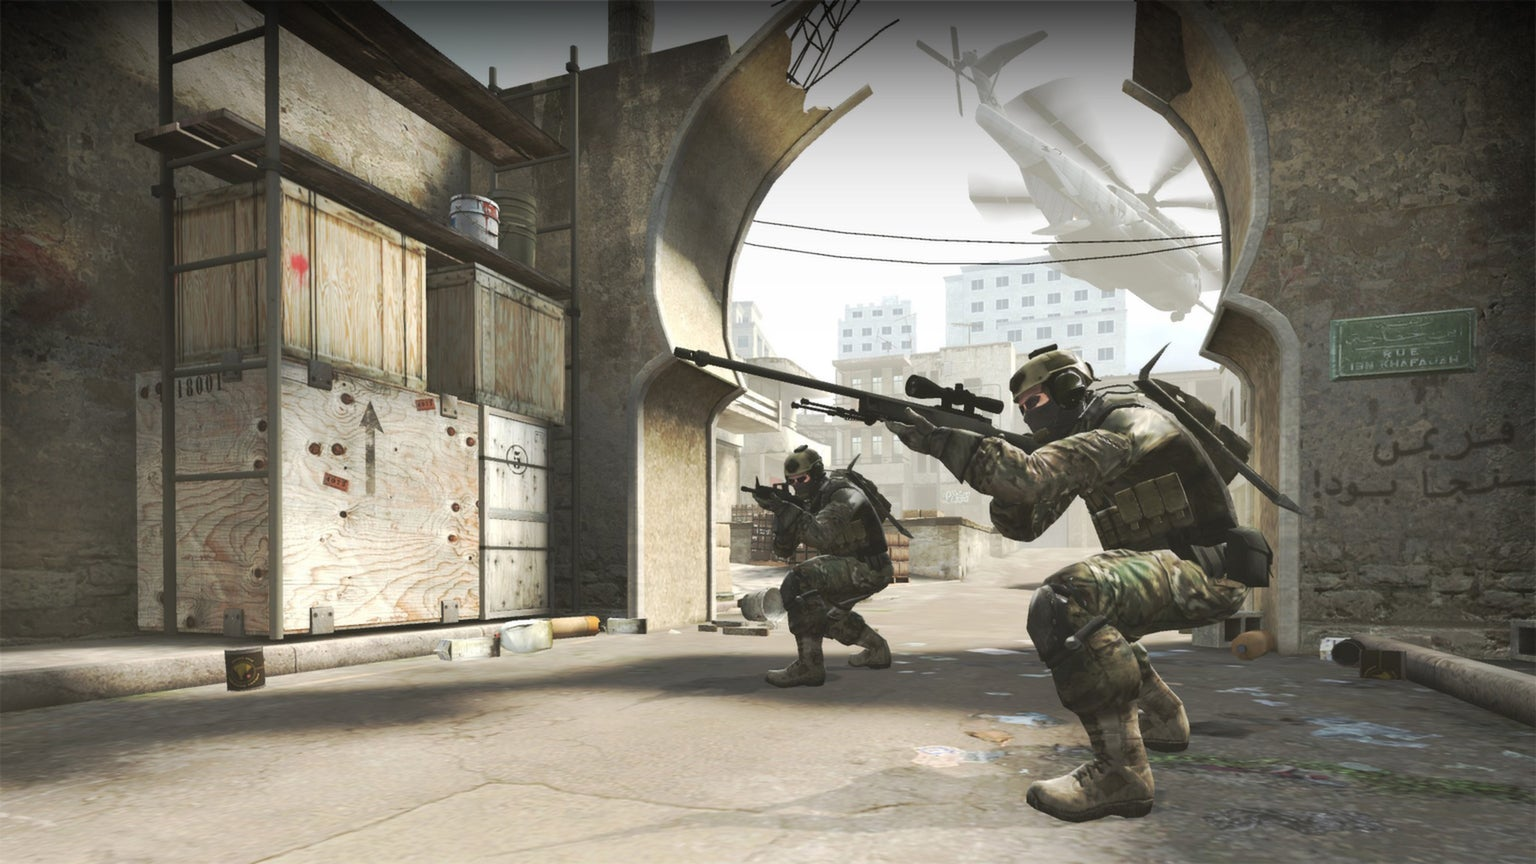 Valve Issues Cease And Desist Letter To 23 Counter-Strike Gambling Sites